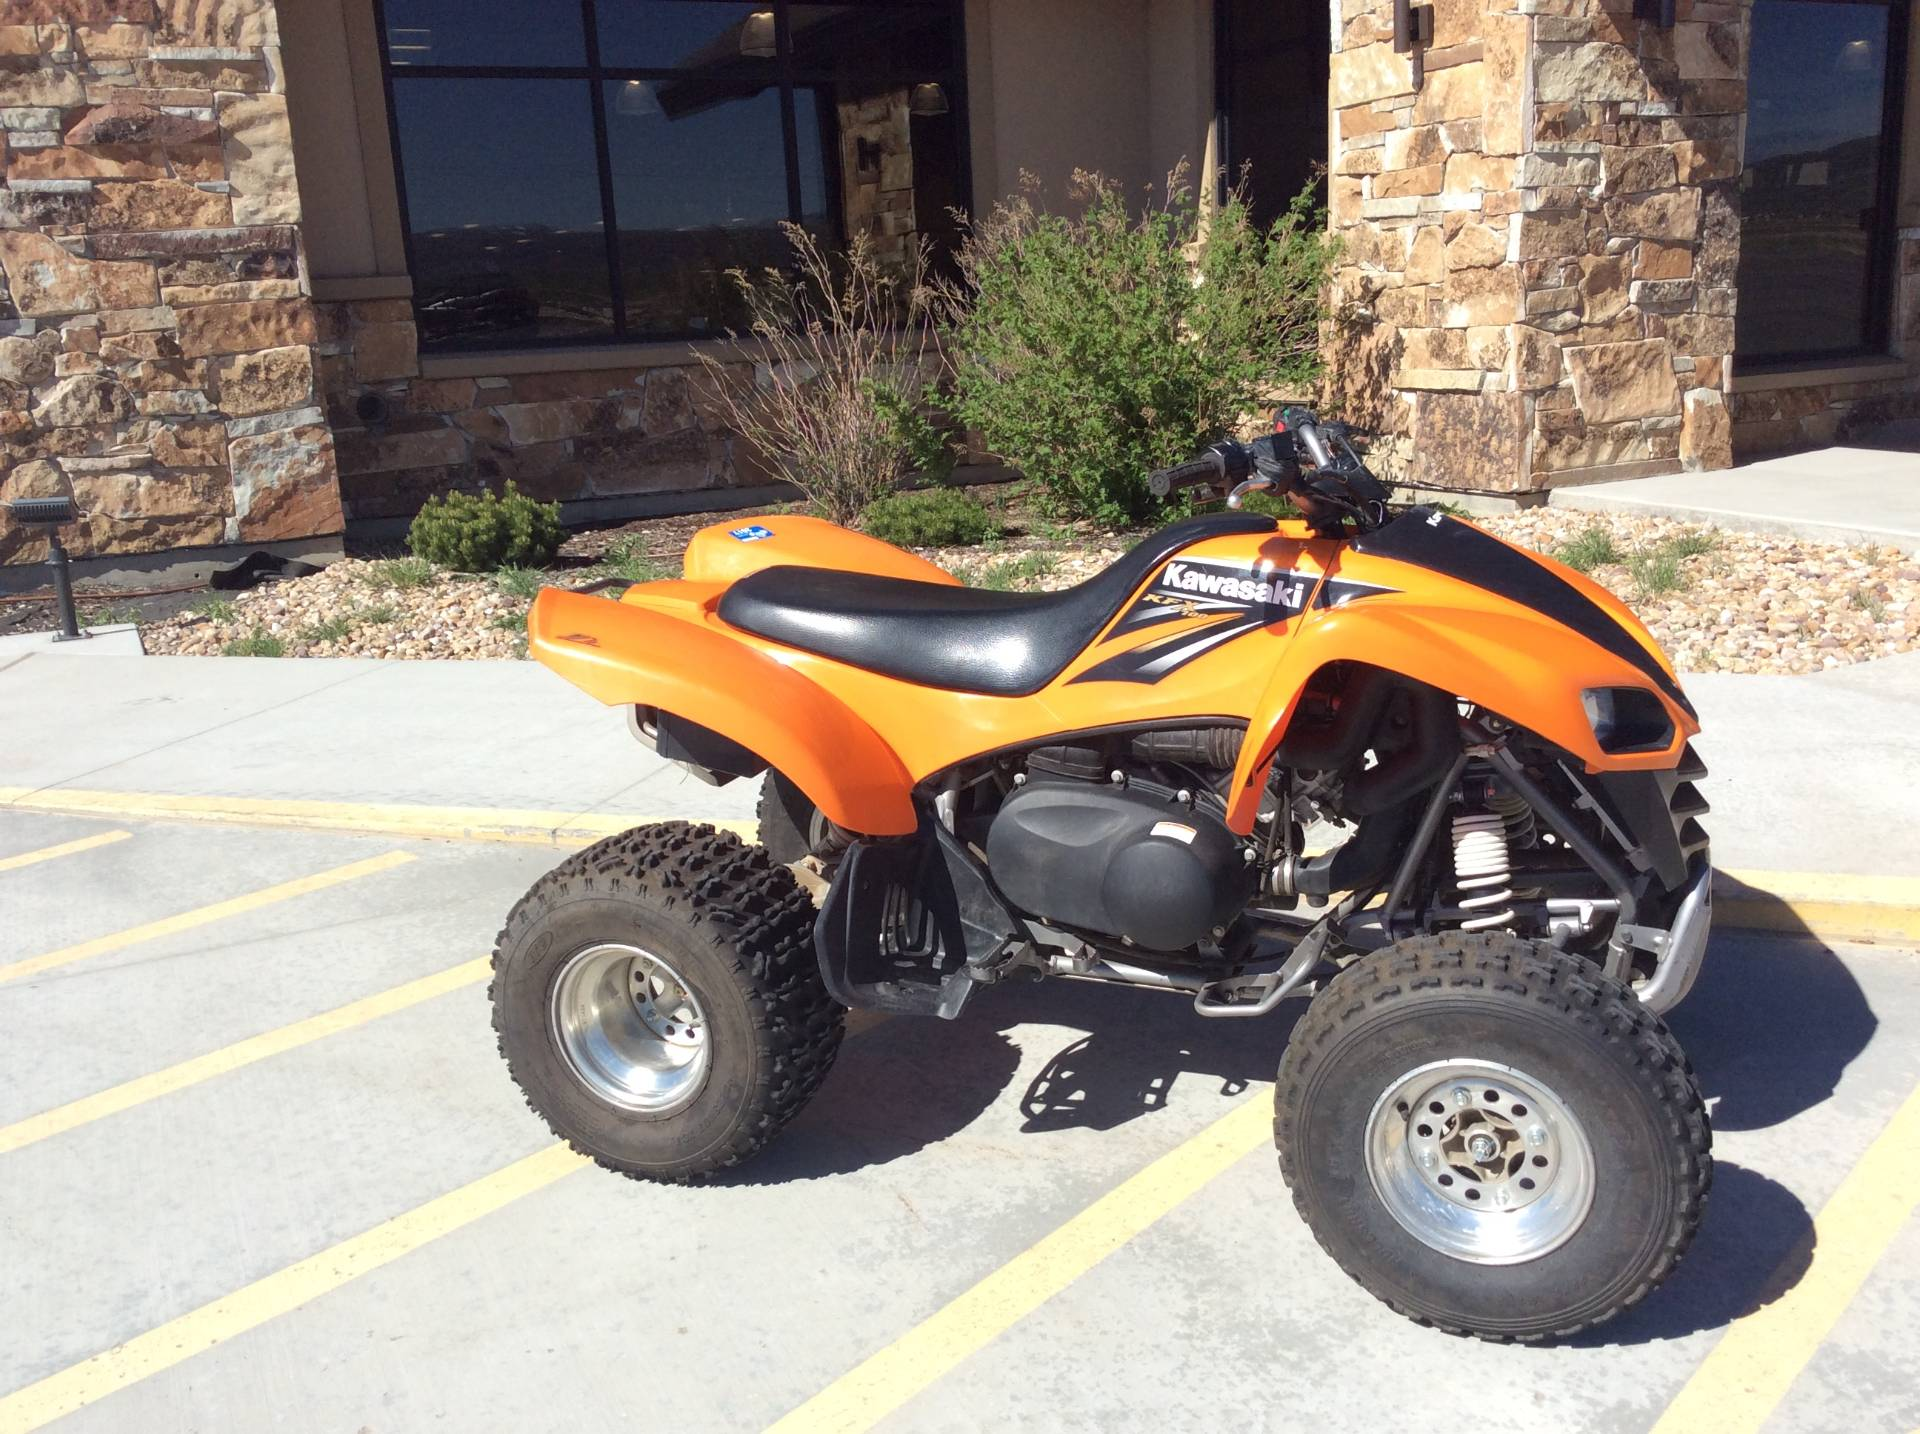 2004 Kawasaki KFX700 V Force in Kamas, Utah